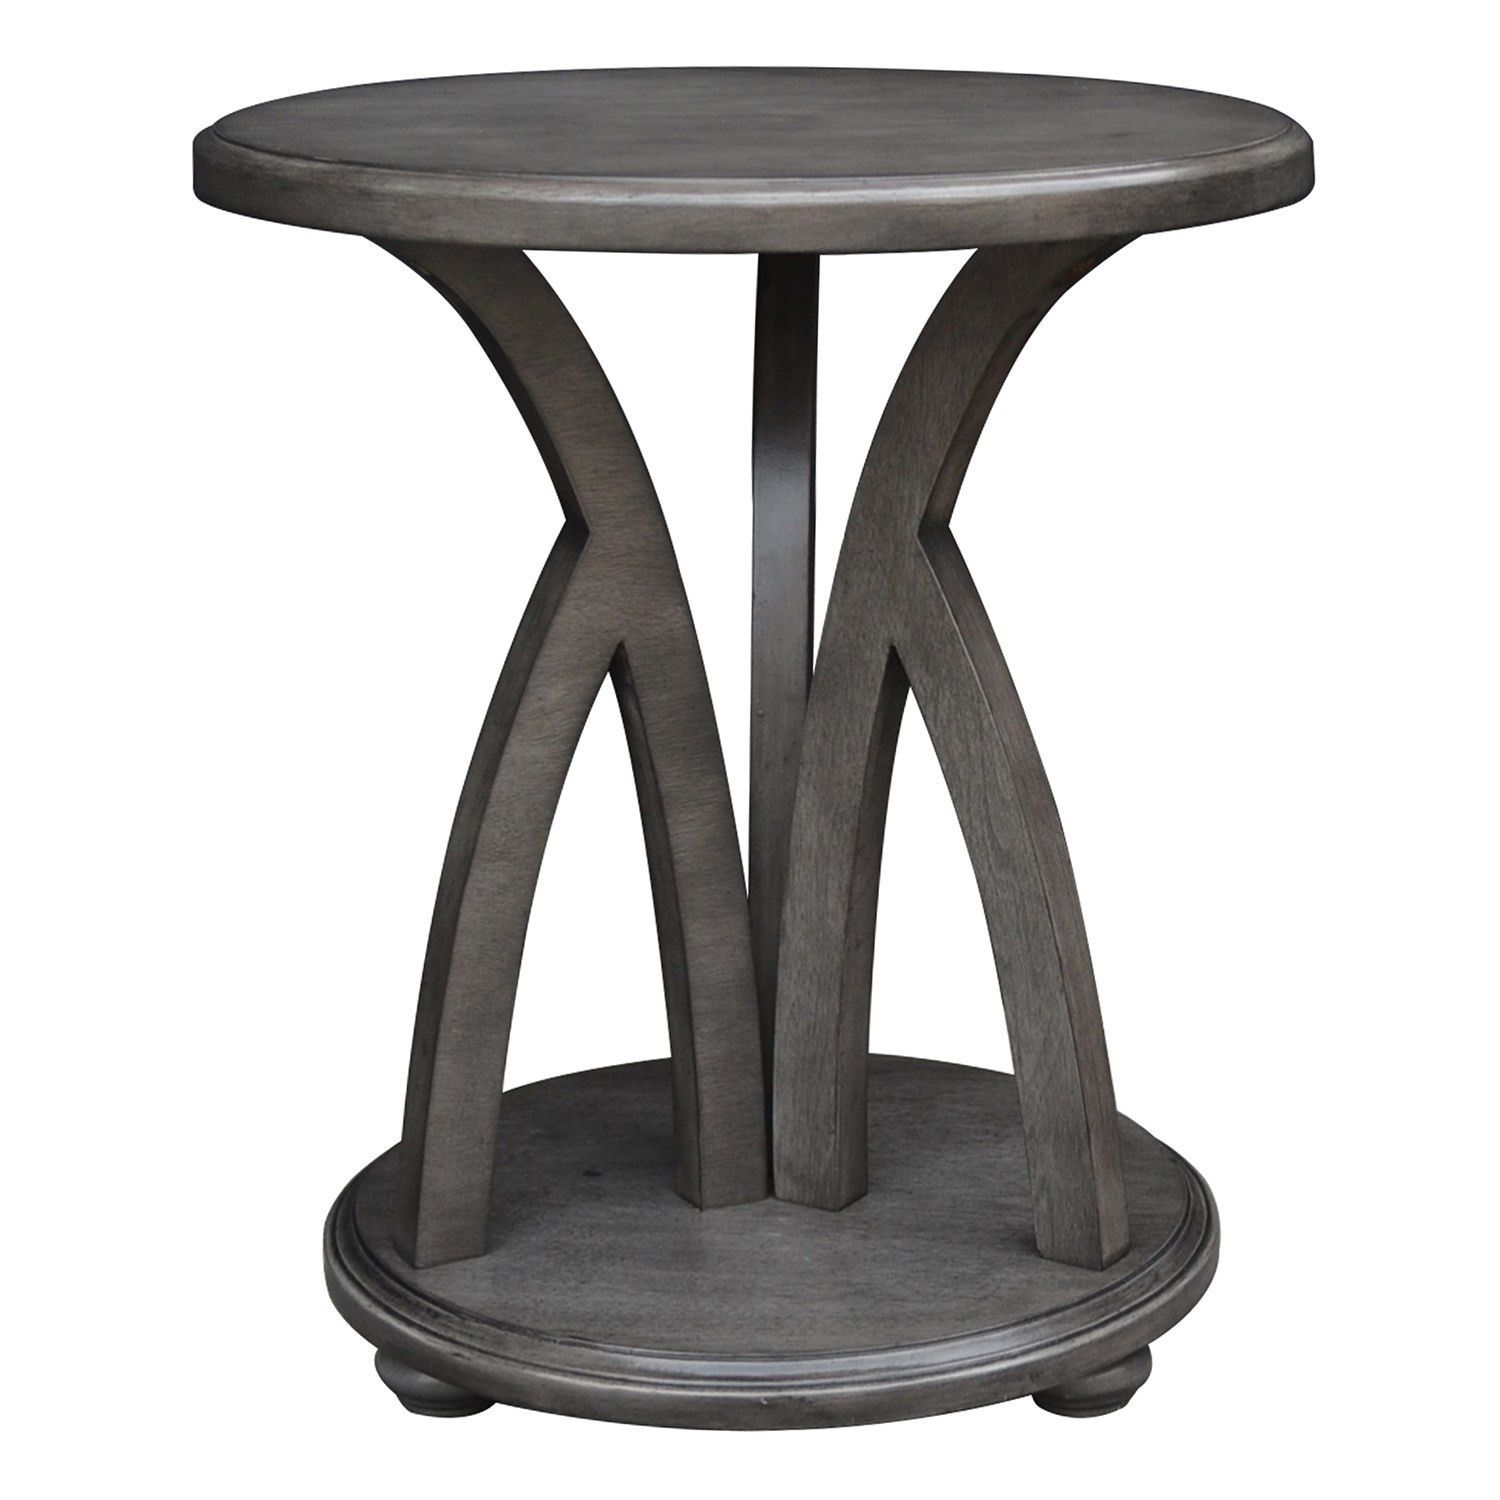 crestview brayden grey accent tables products round table pink marble nautical bar lights drum throne base woven coffee trestle dining linens canadian tire patio furniture sets